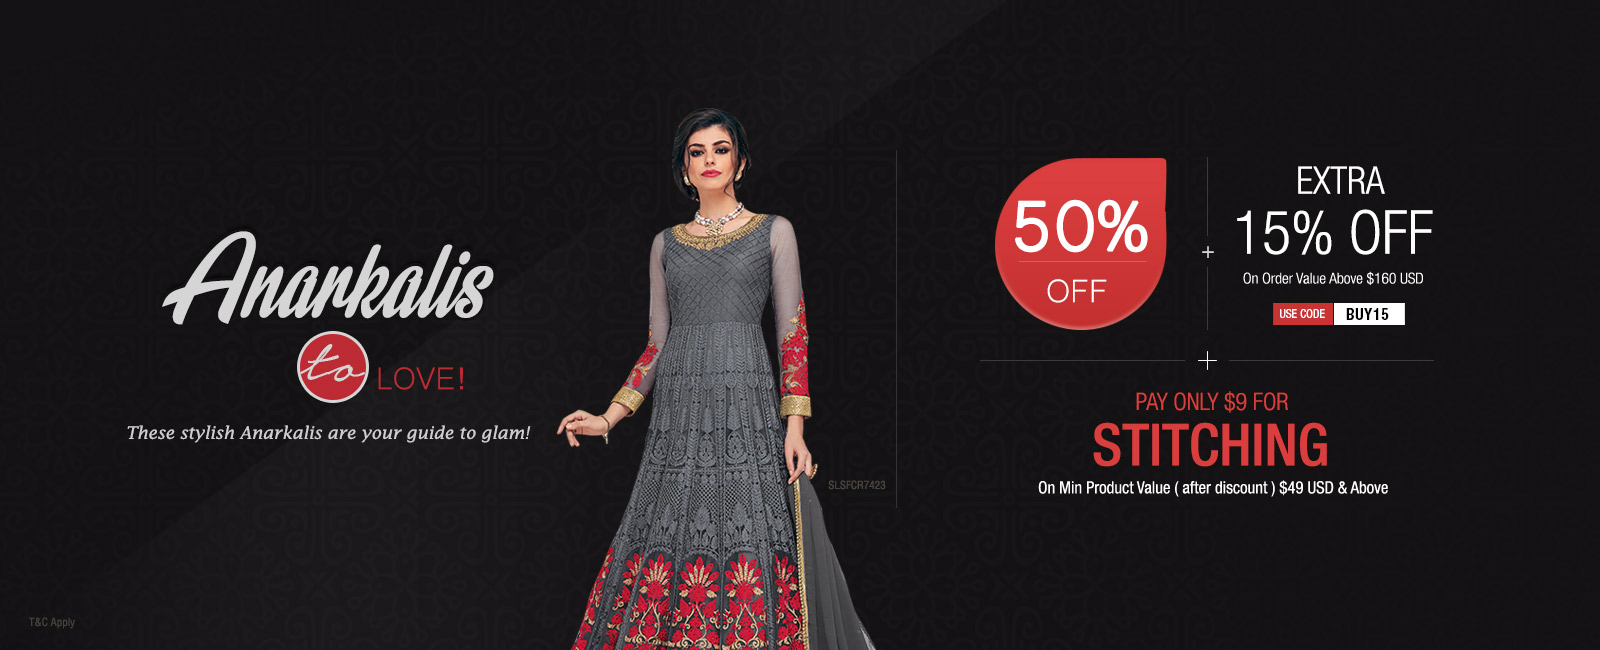 Flat 50% Off + Extra 15% Off + Pay only $9 for Stitching